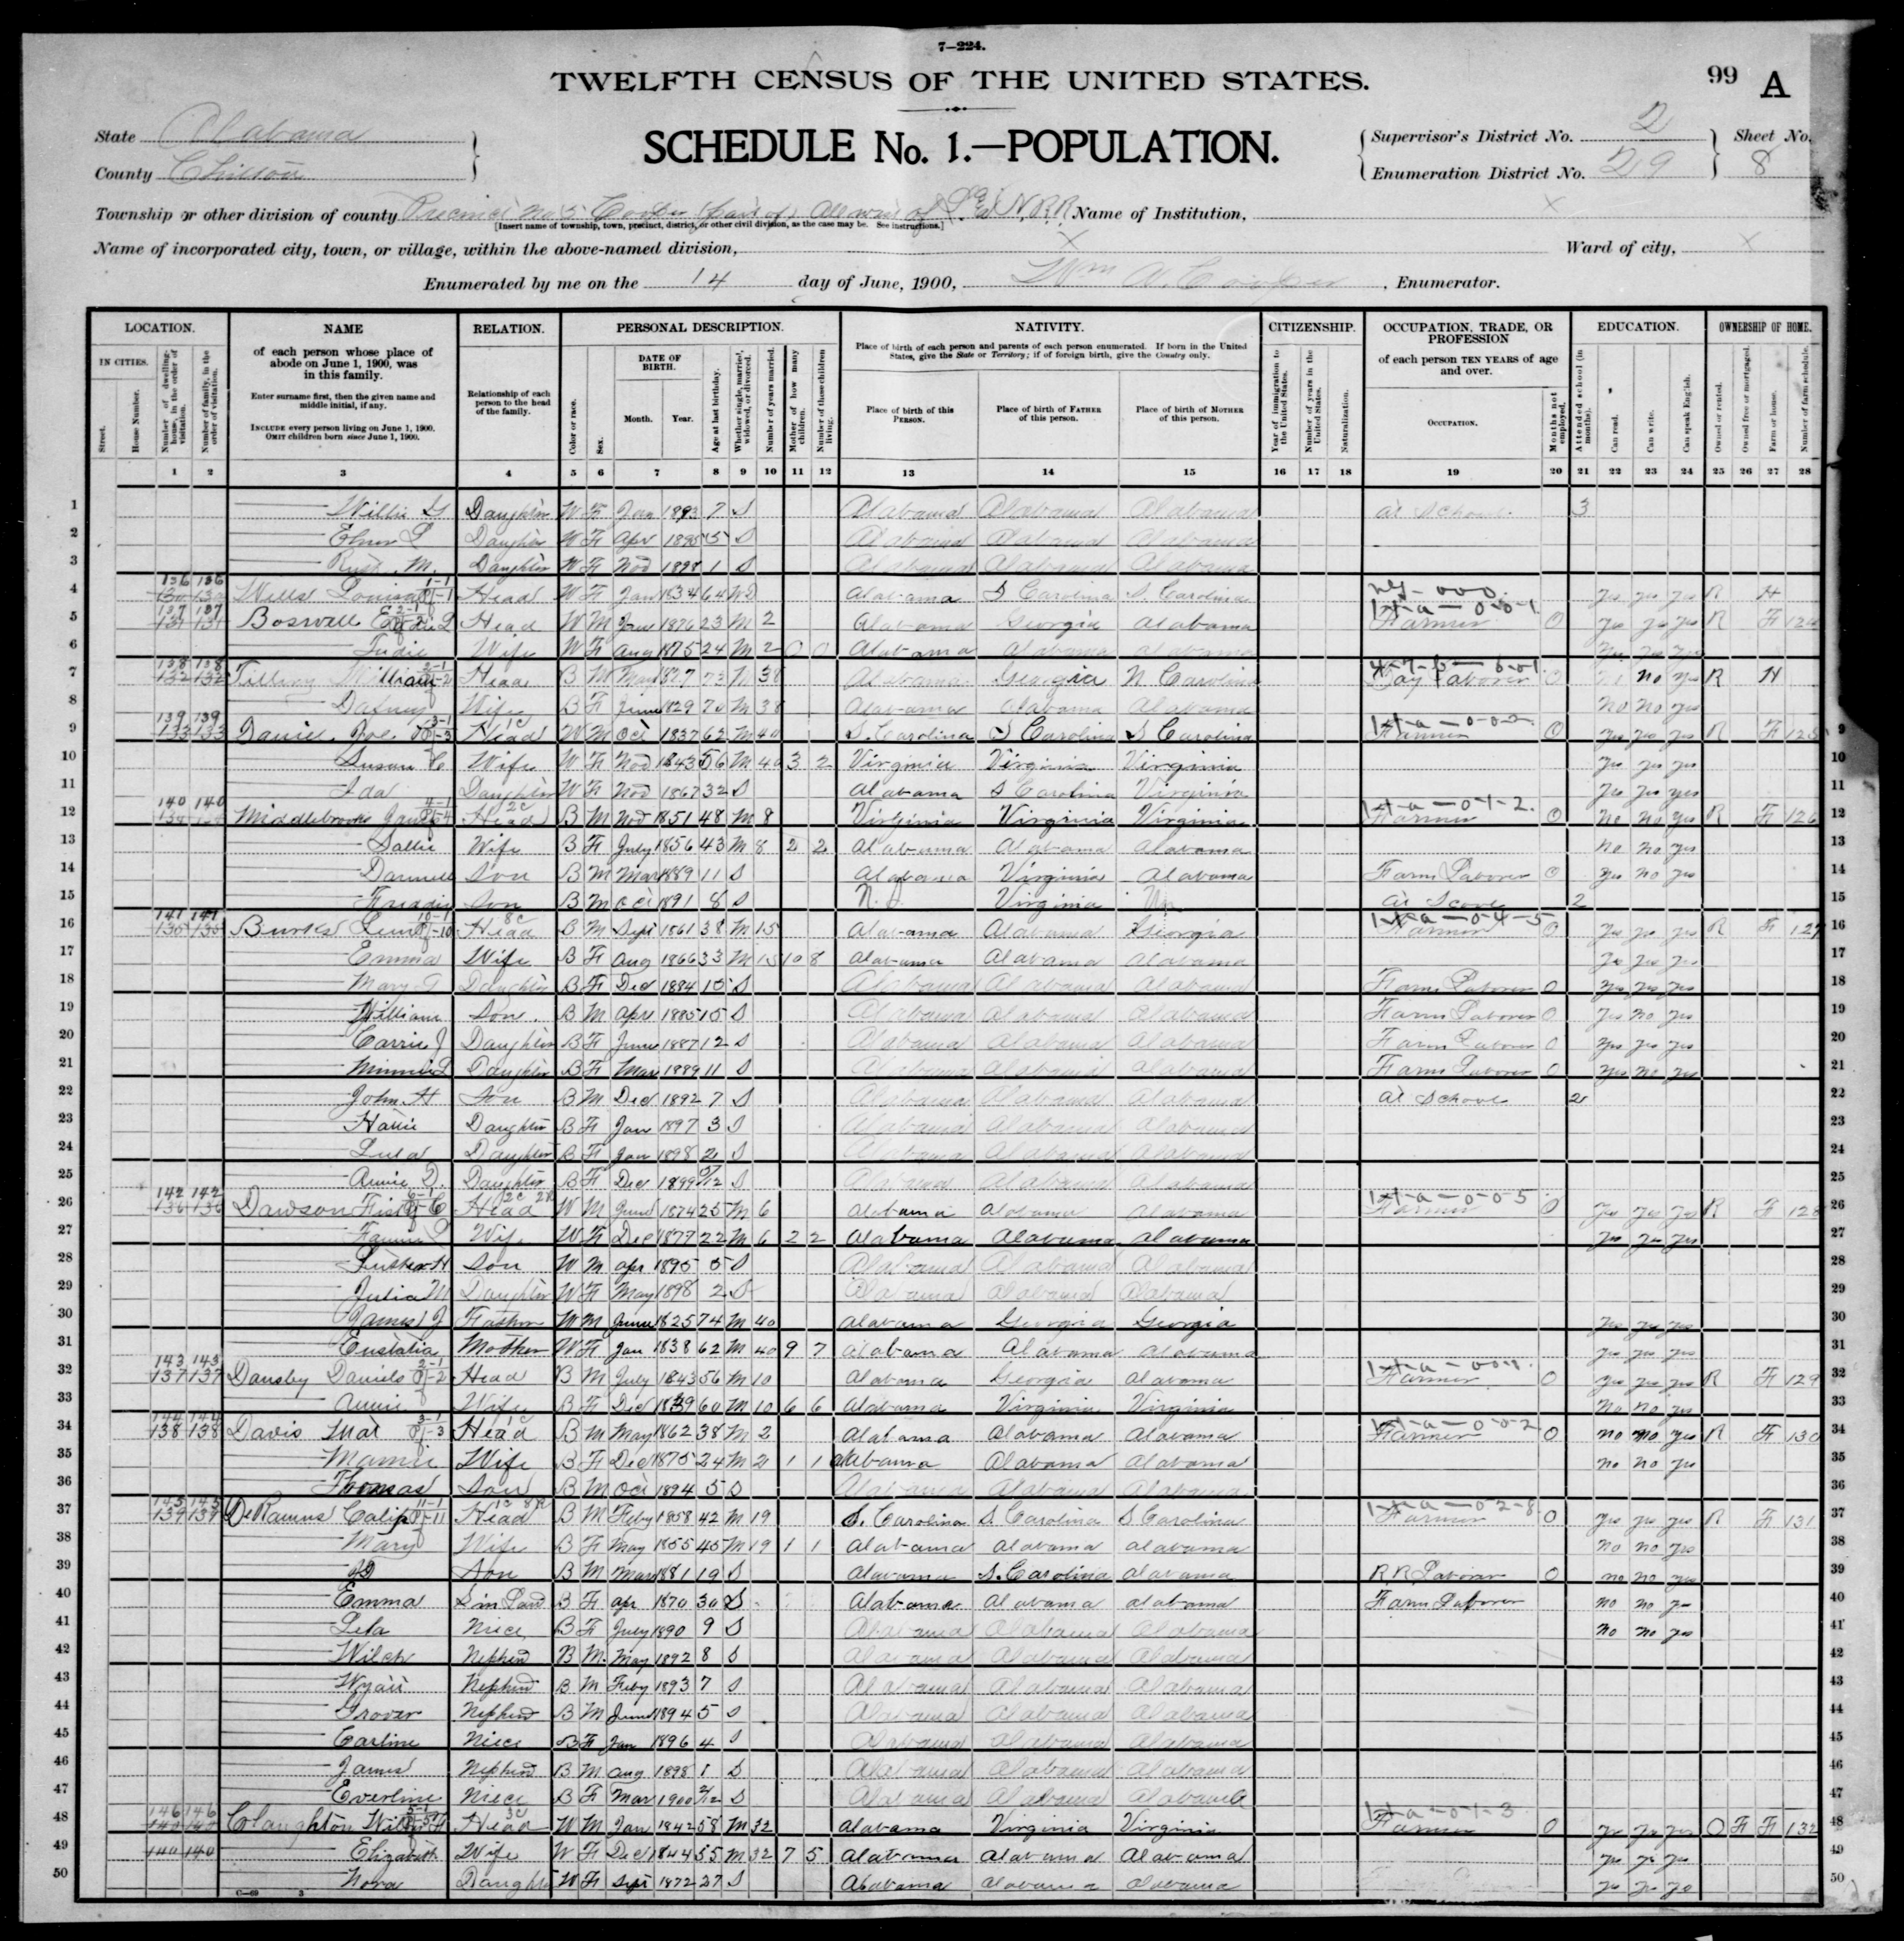 Alabama: CHILTON County, Enumeration District 29, Sheet No. 8A